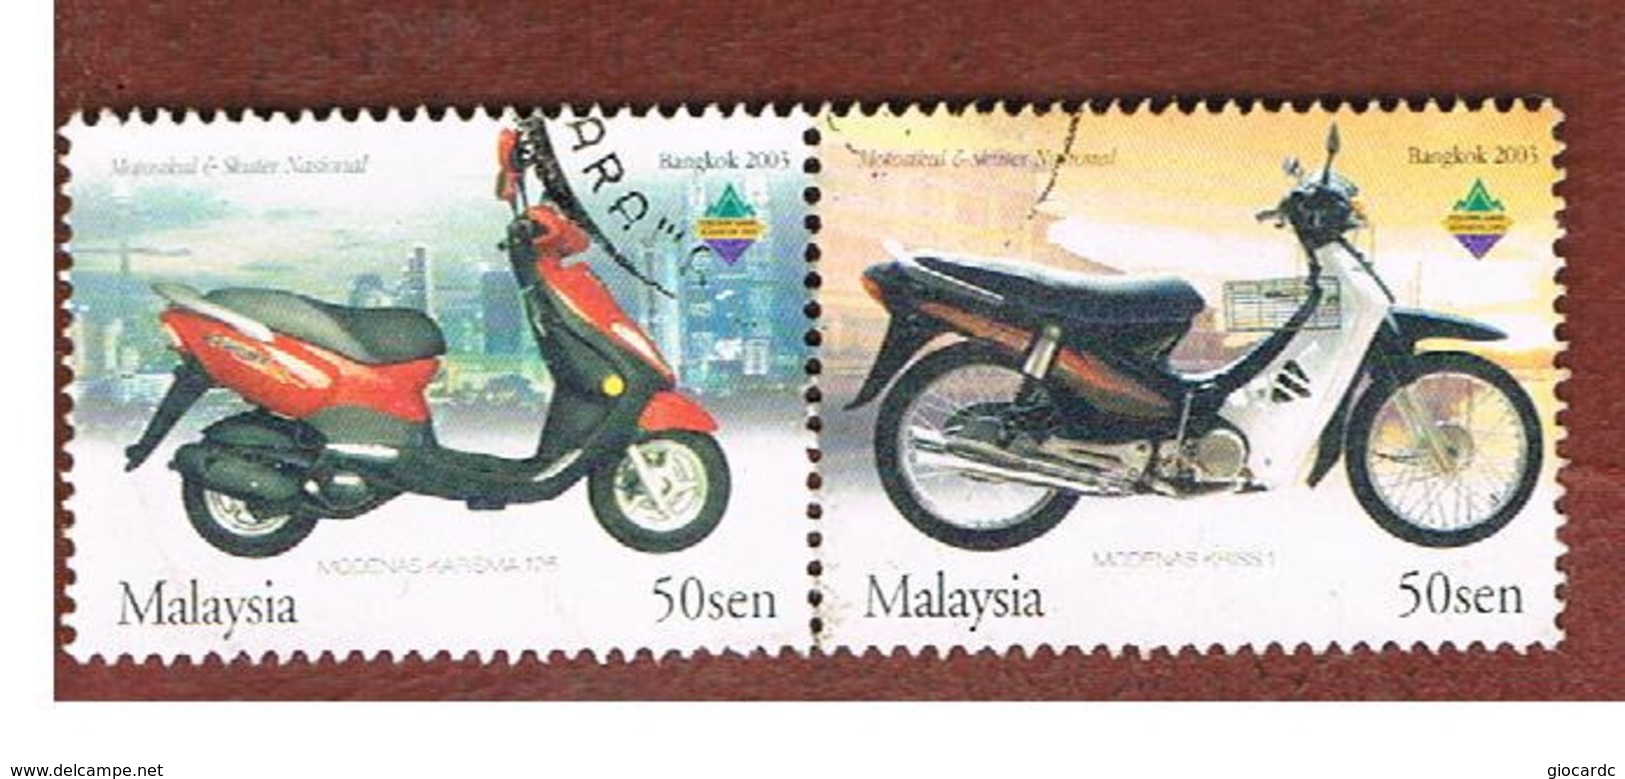 MALESIA (MALAYSIA)  -  SG 1168a -   2003 MOTORCYCLES:  (2 DIFFERENT STAMPS SE-TENANT WITH EXN. EMBLEM)  -  USED ° - Malesia (1964-...)